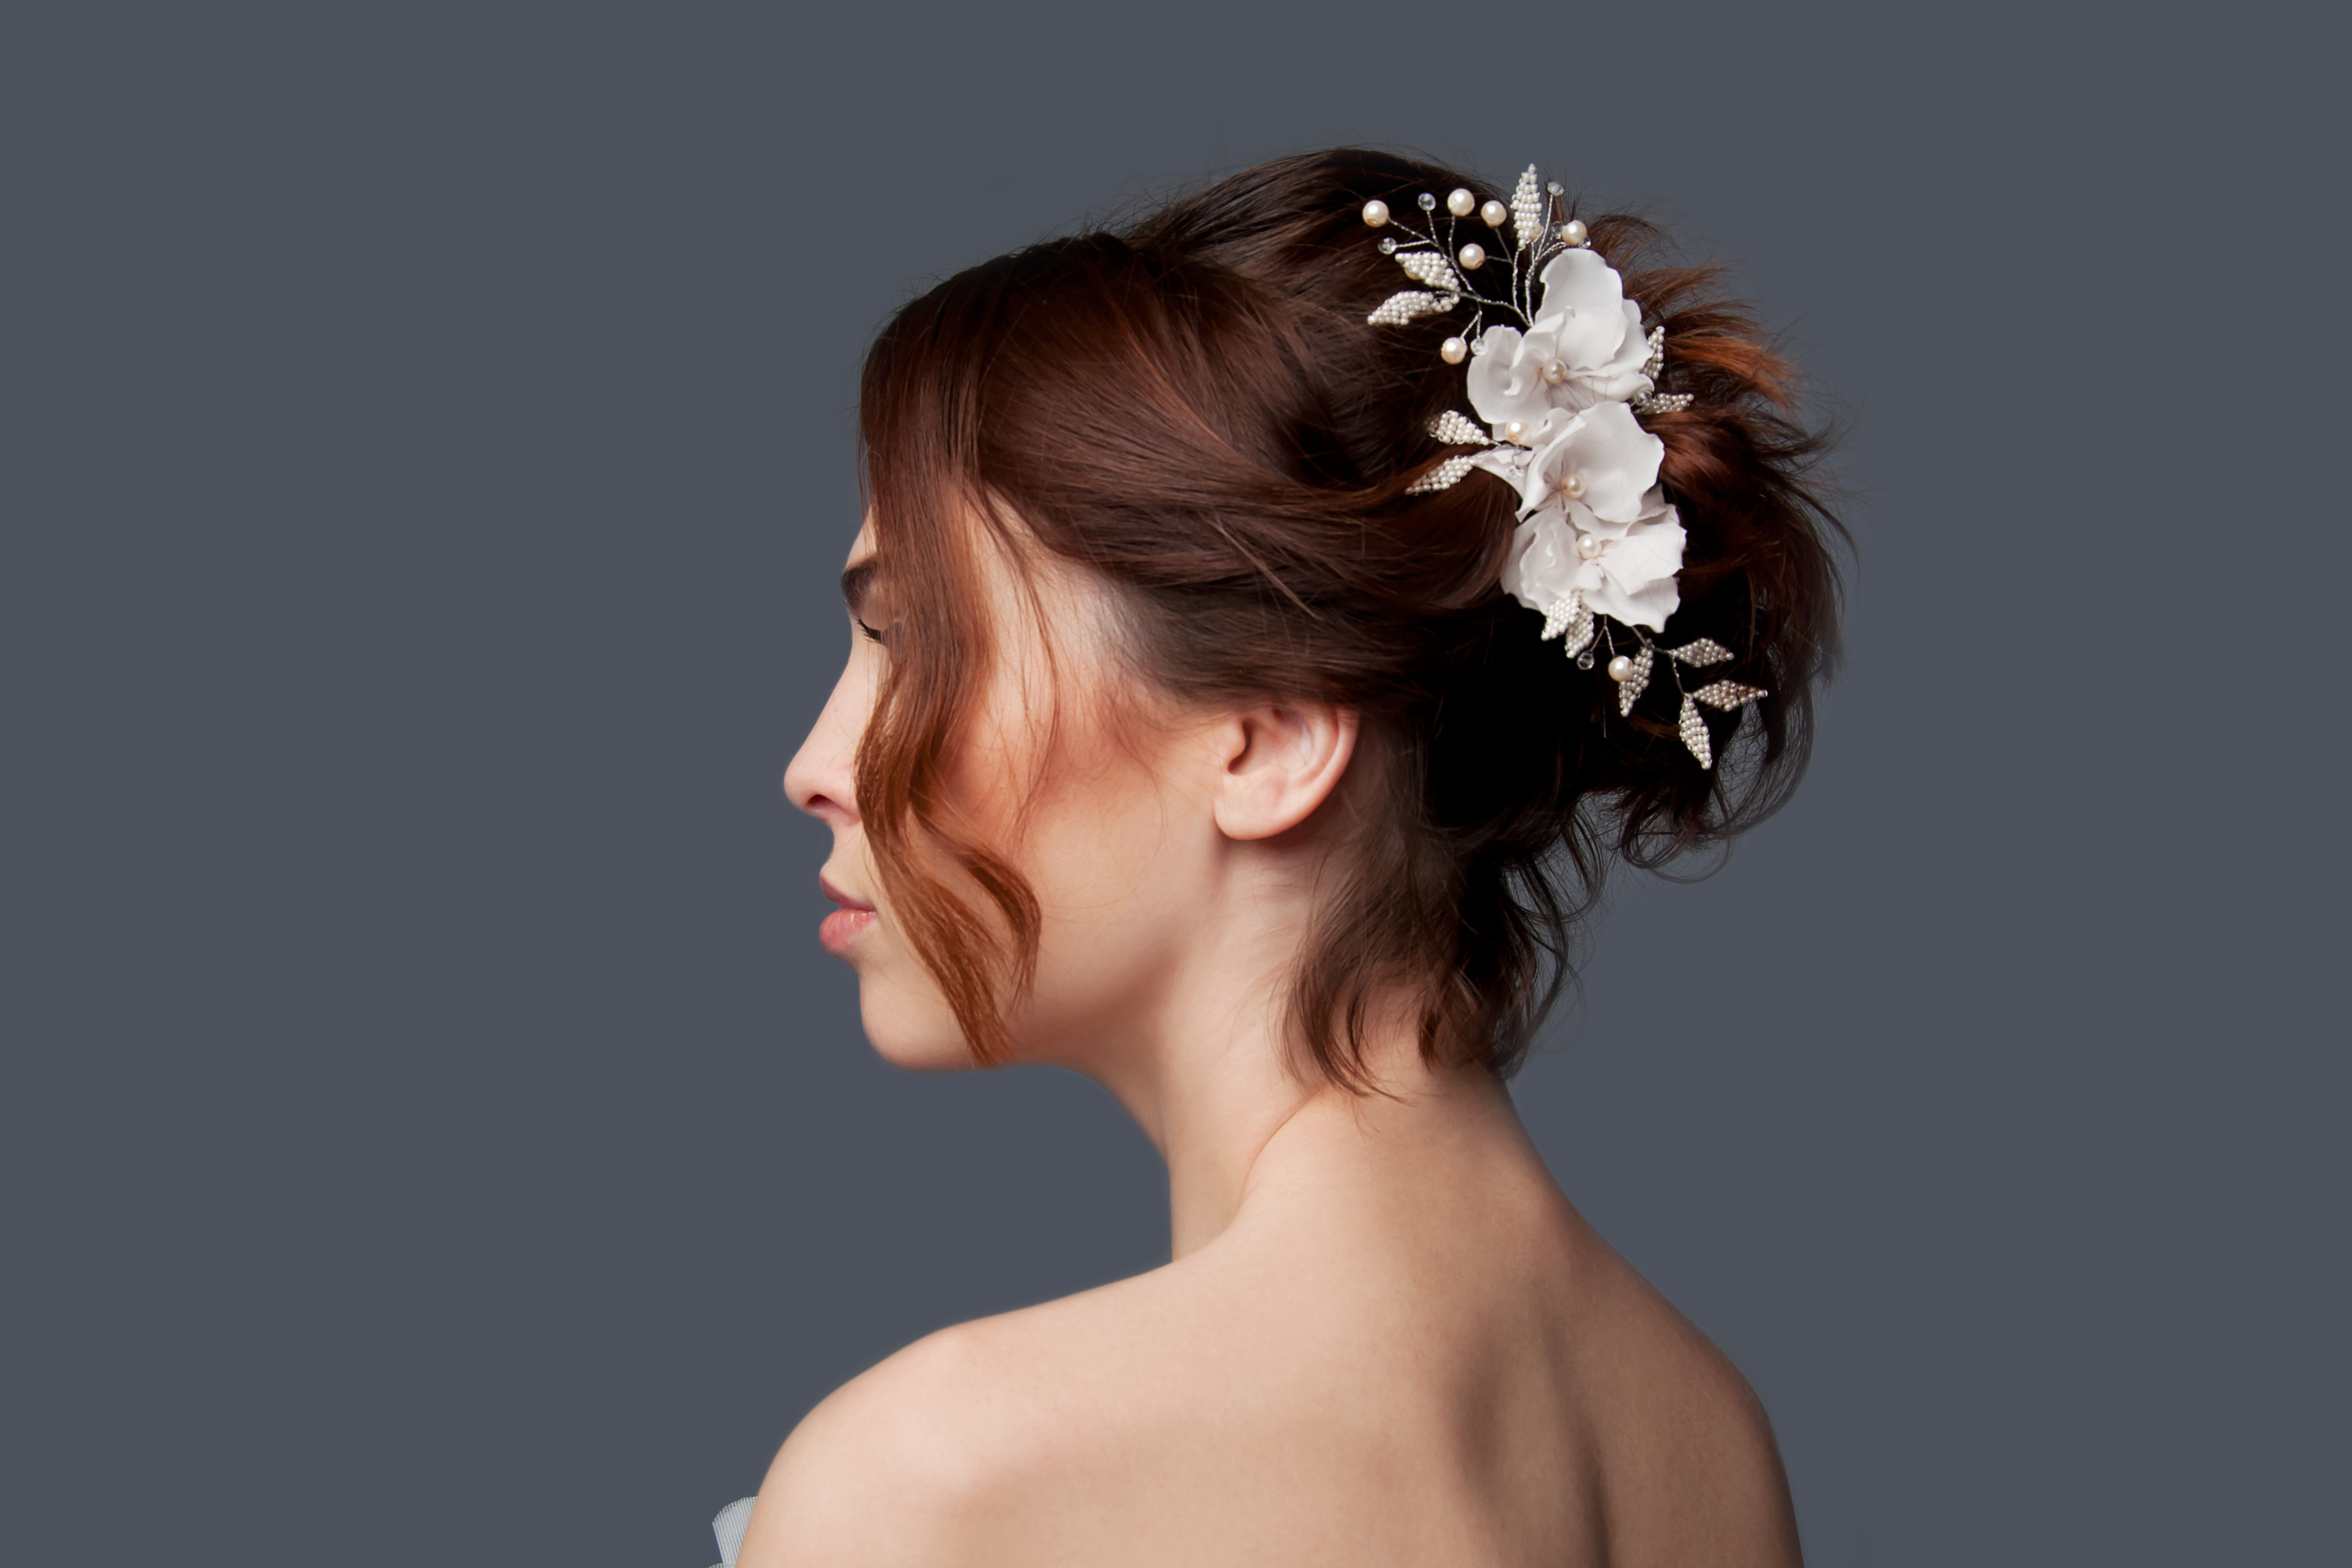 Updos can be kind of tricky for your wedding if you have short hair. Try doing an updo and adding a flower crown to it. It will look amazing!